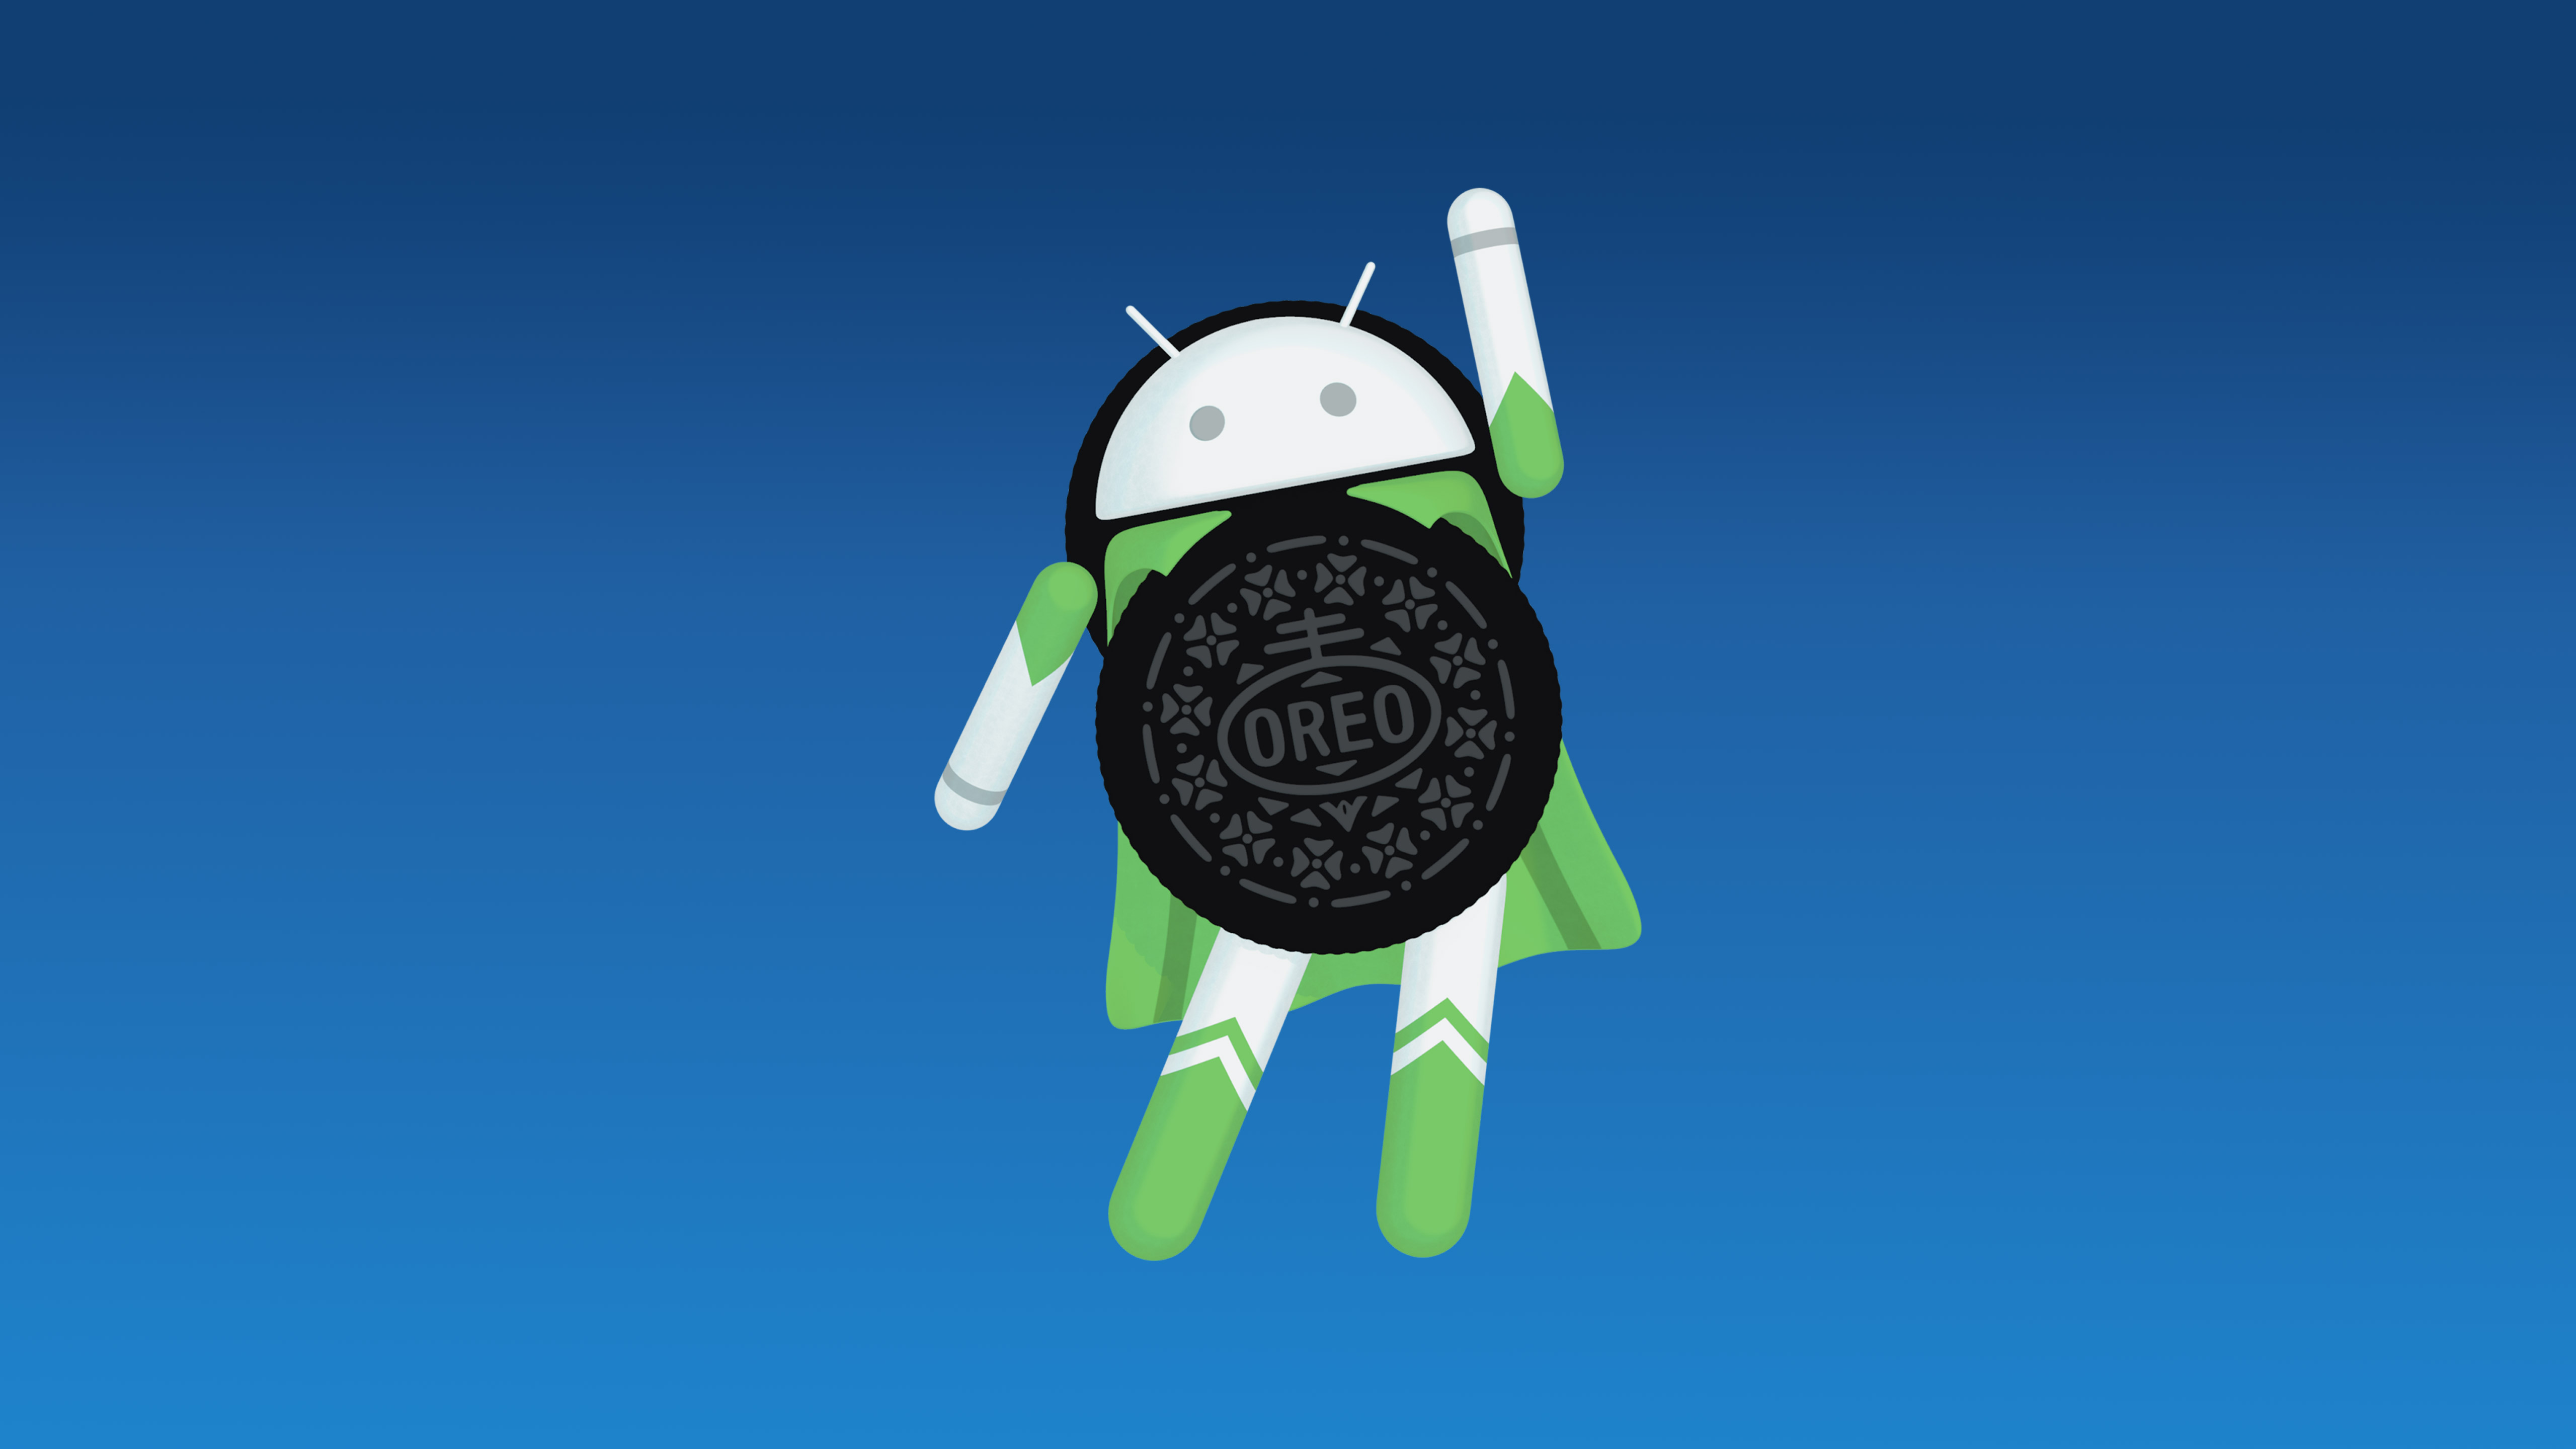 Android Oreo Logo 4k, HD Computer, 4k Wallpapers, Images